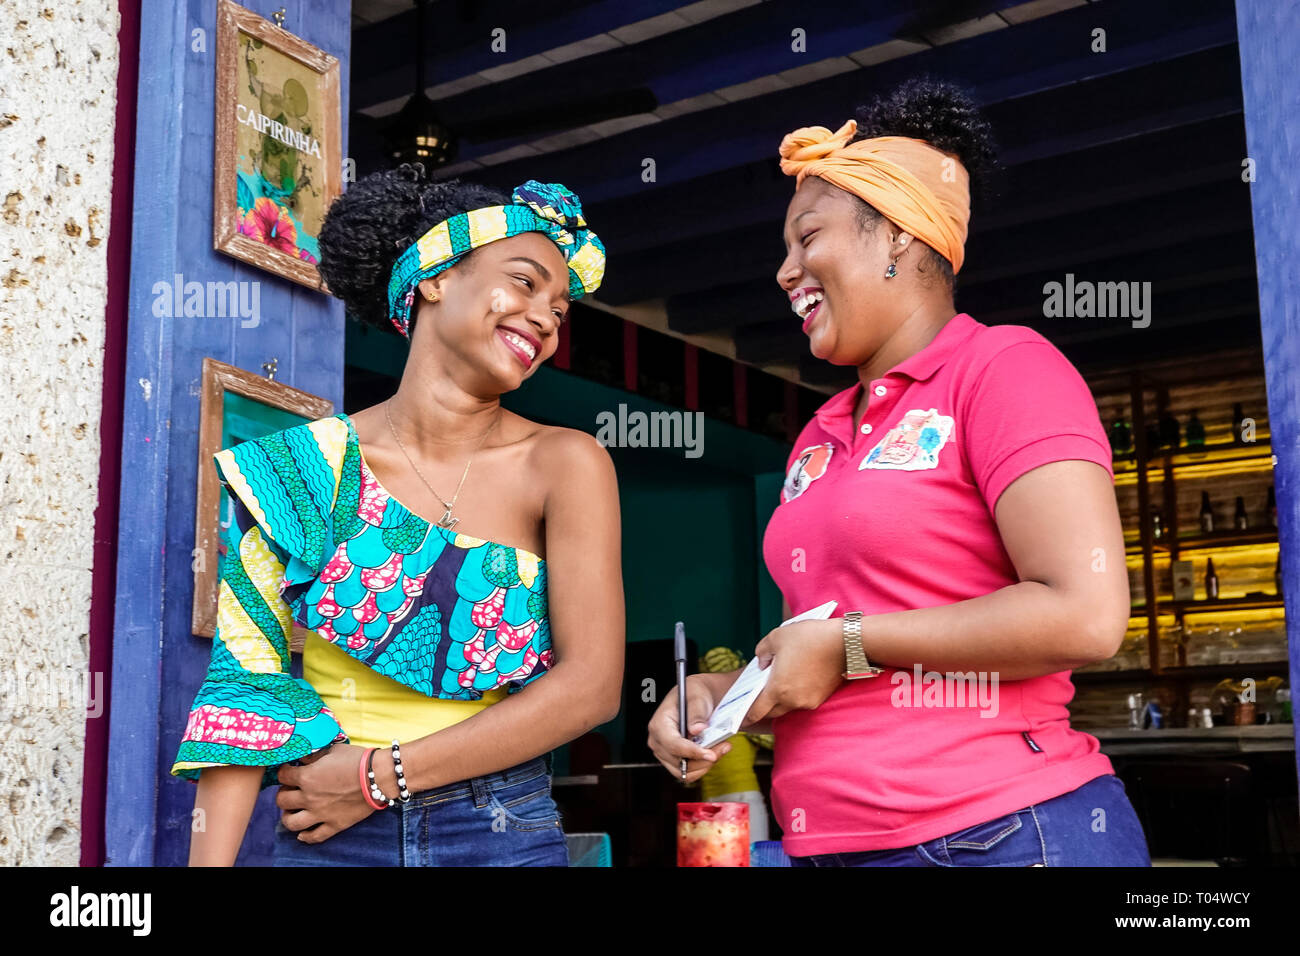 Cartagena Colombia Old Walled City Center centre Getsemani Hispanic resident residents woman restaurant bar hostess waitress co-workers typical turban - Stock Image